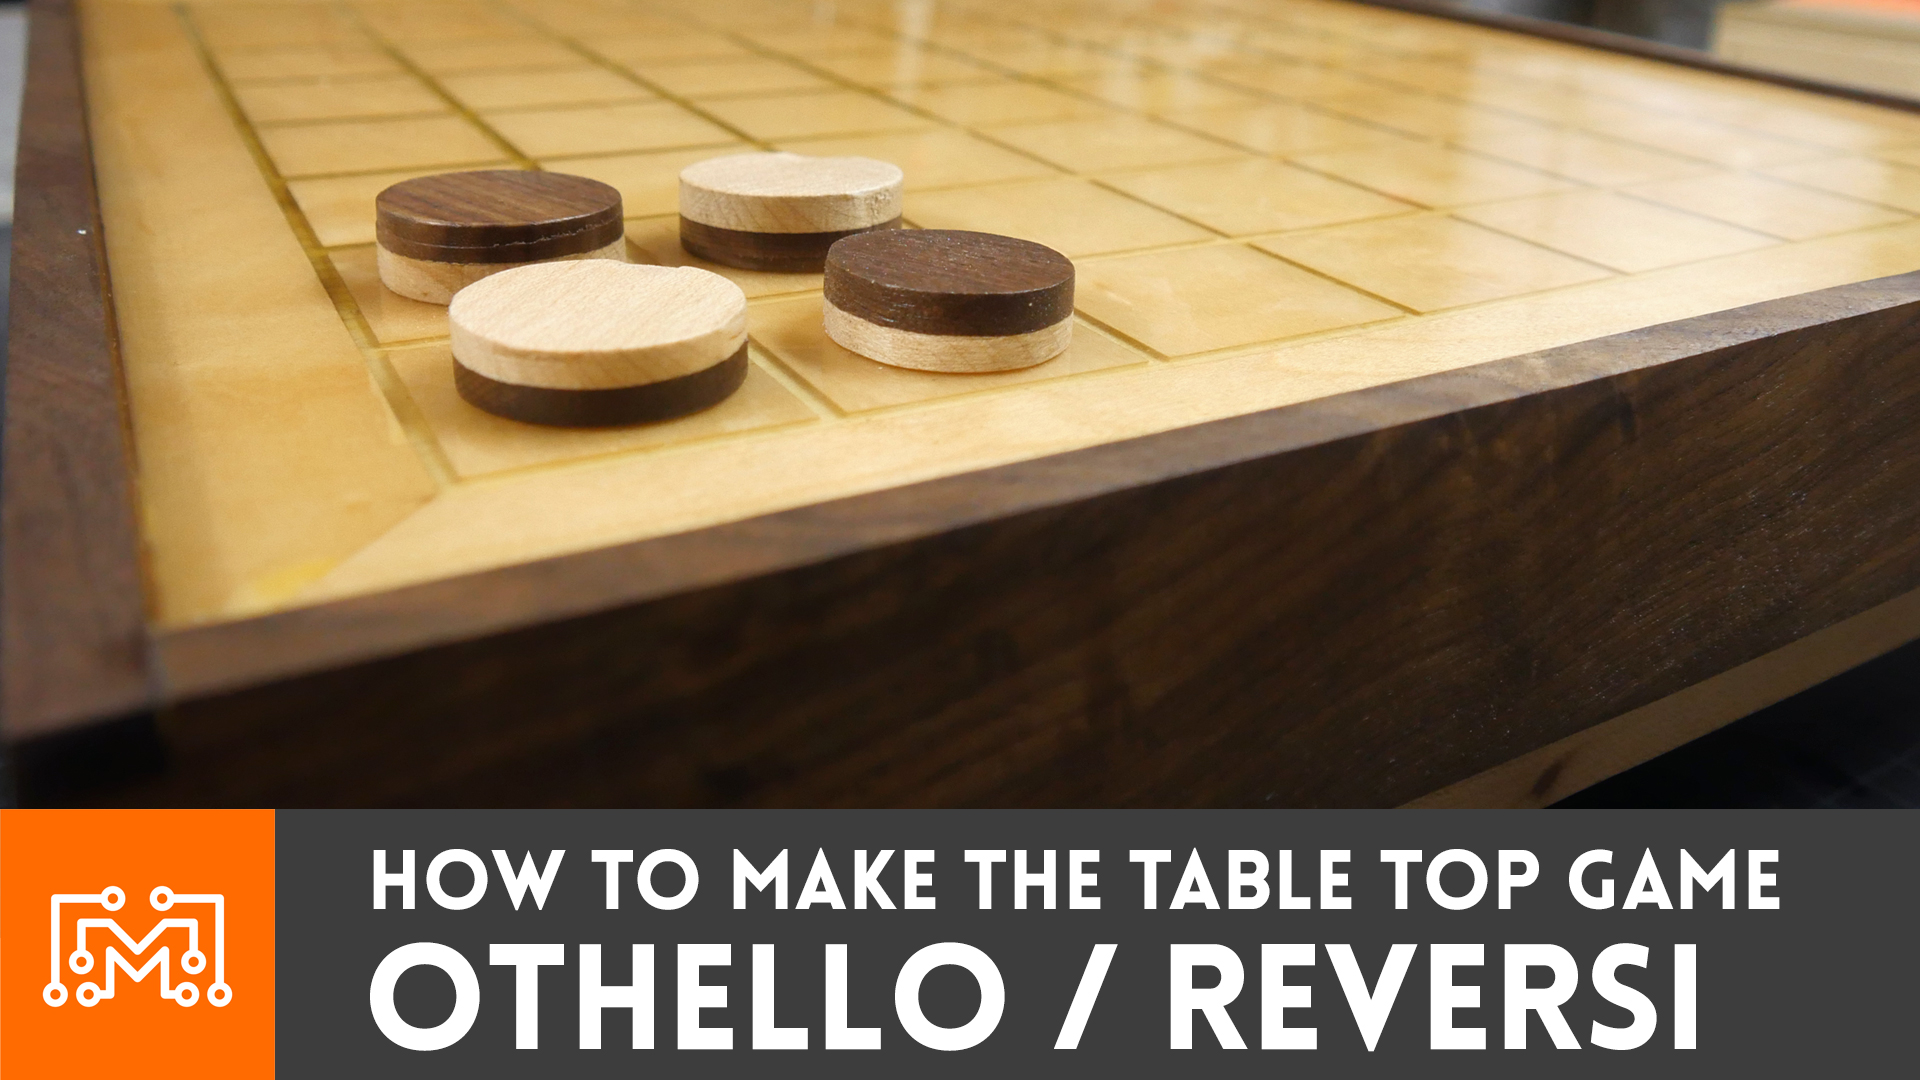 How To Make Othello / Reversi (tabletop Game)